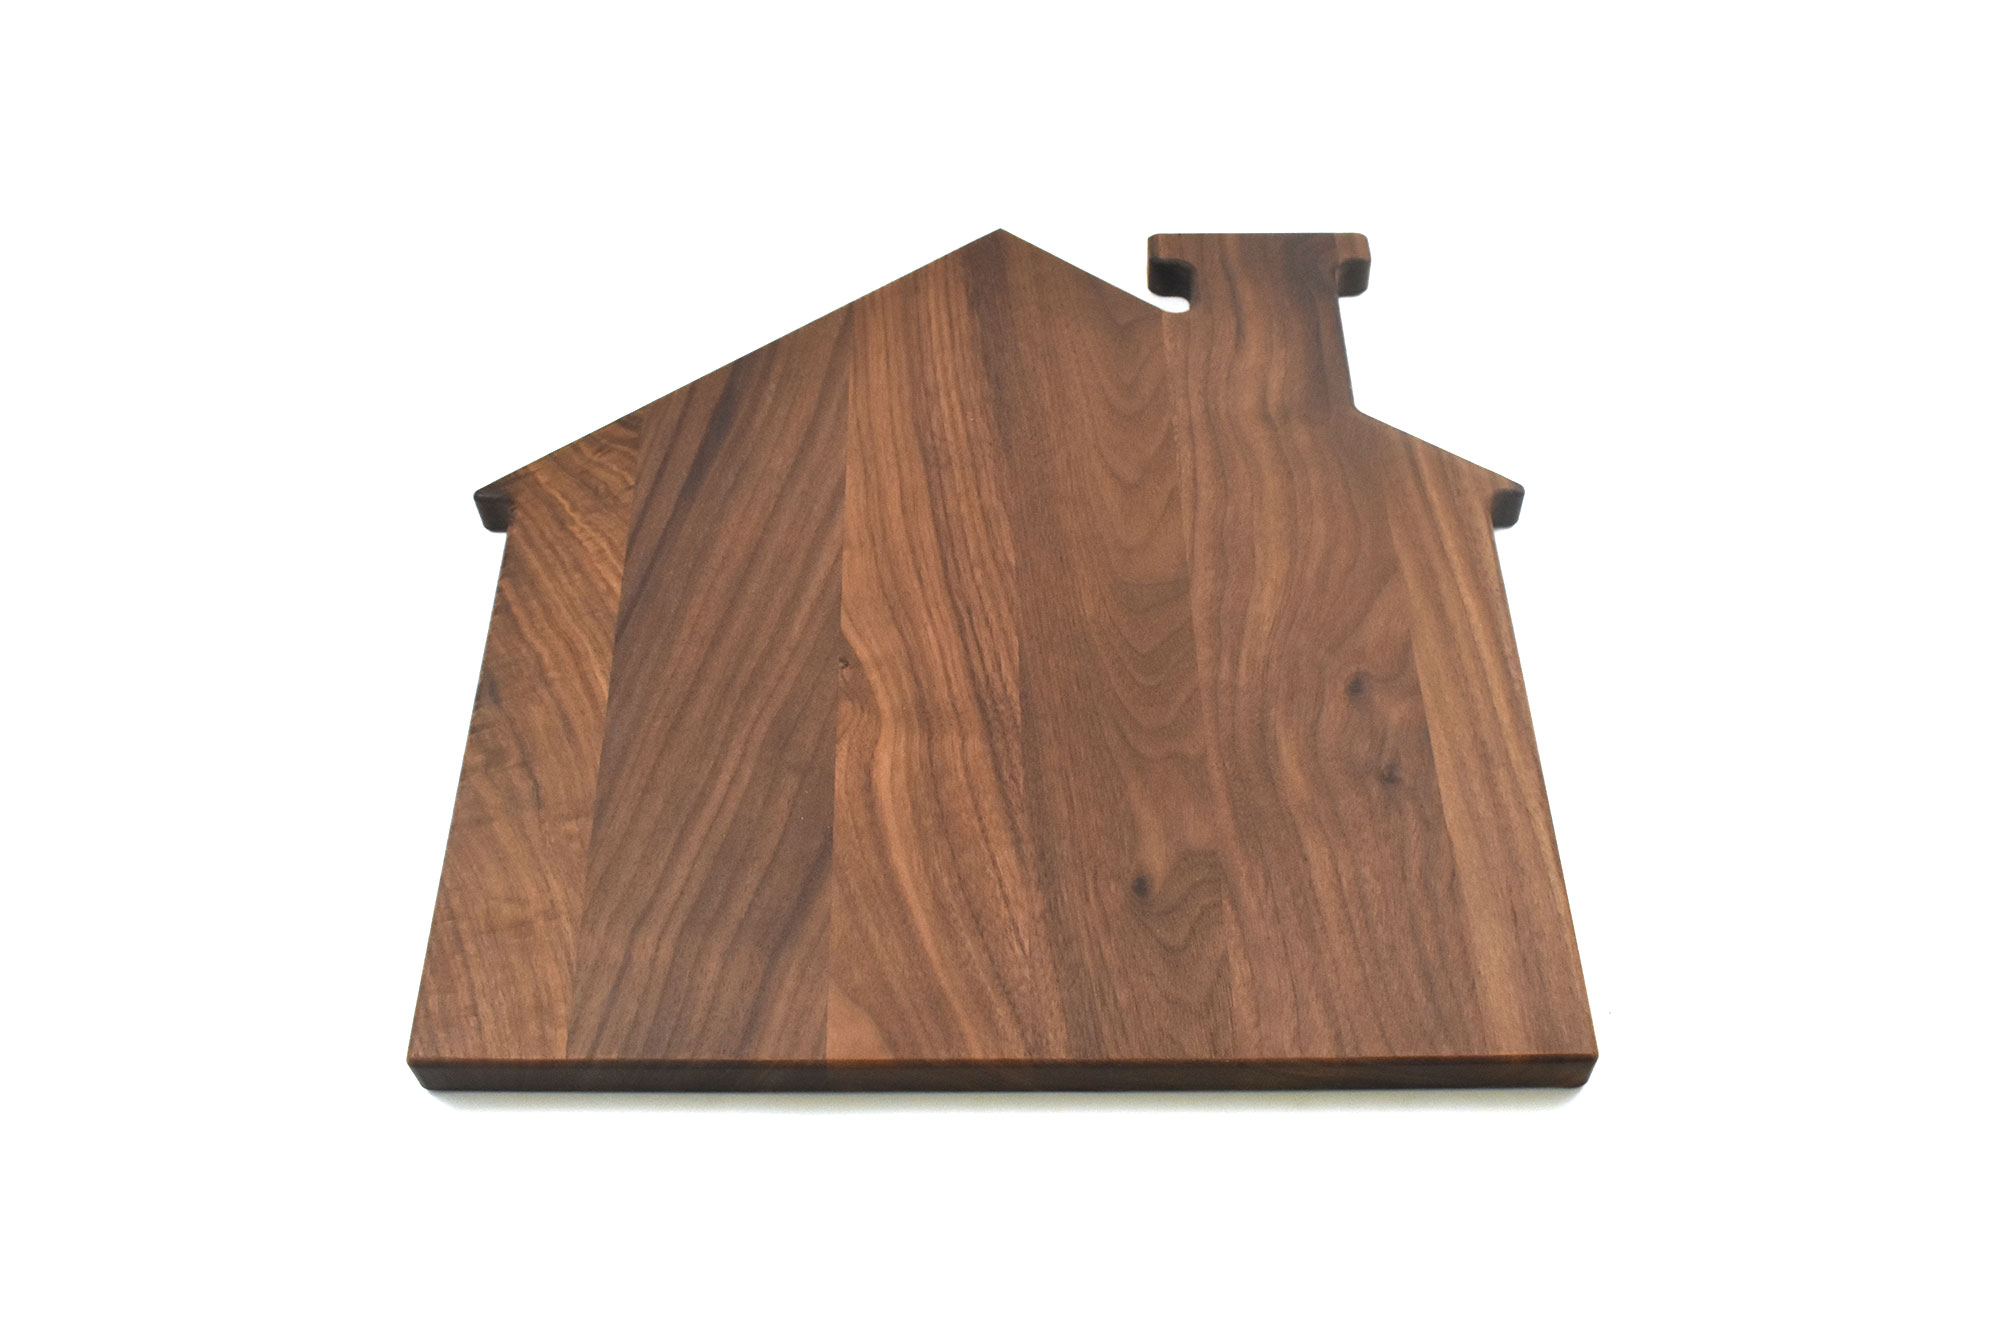 Walnut house cutting board